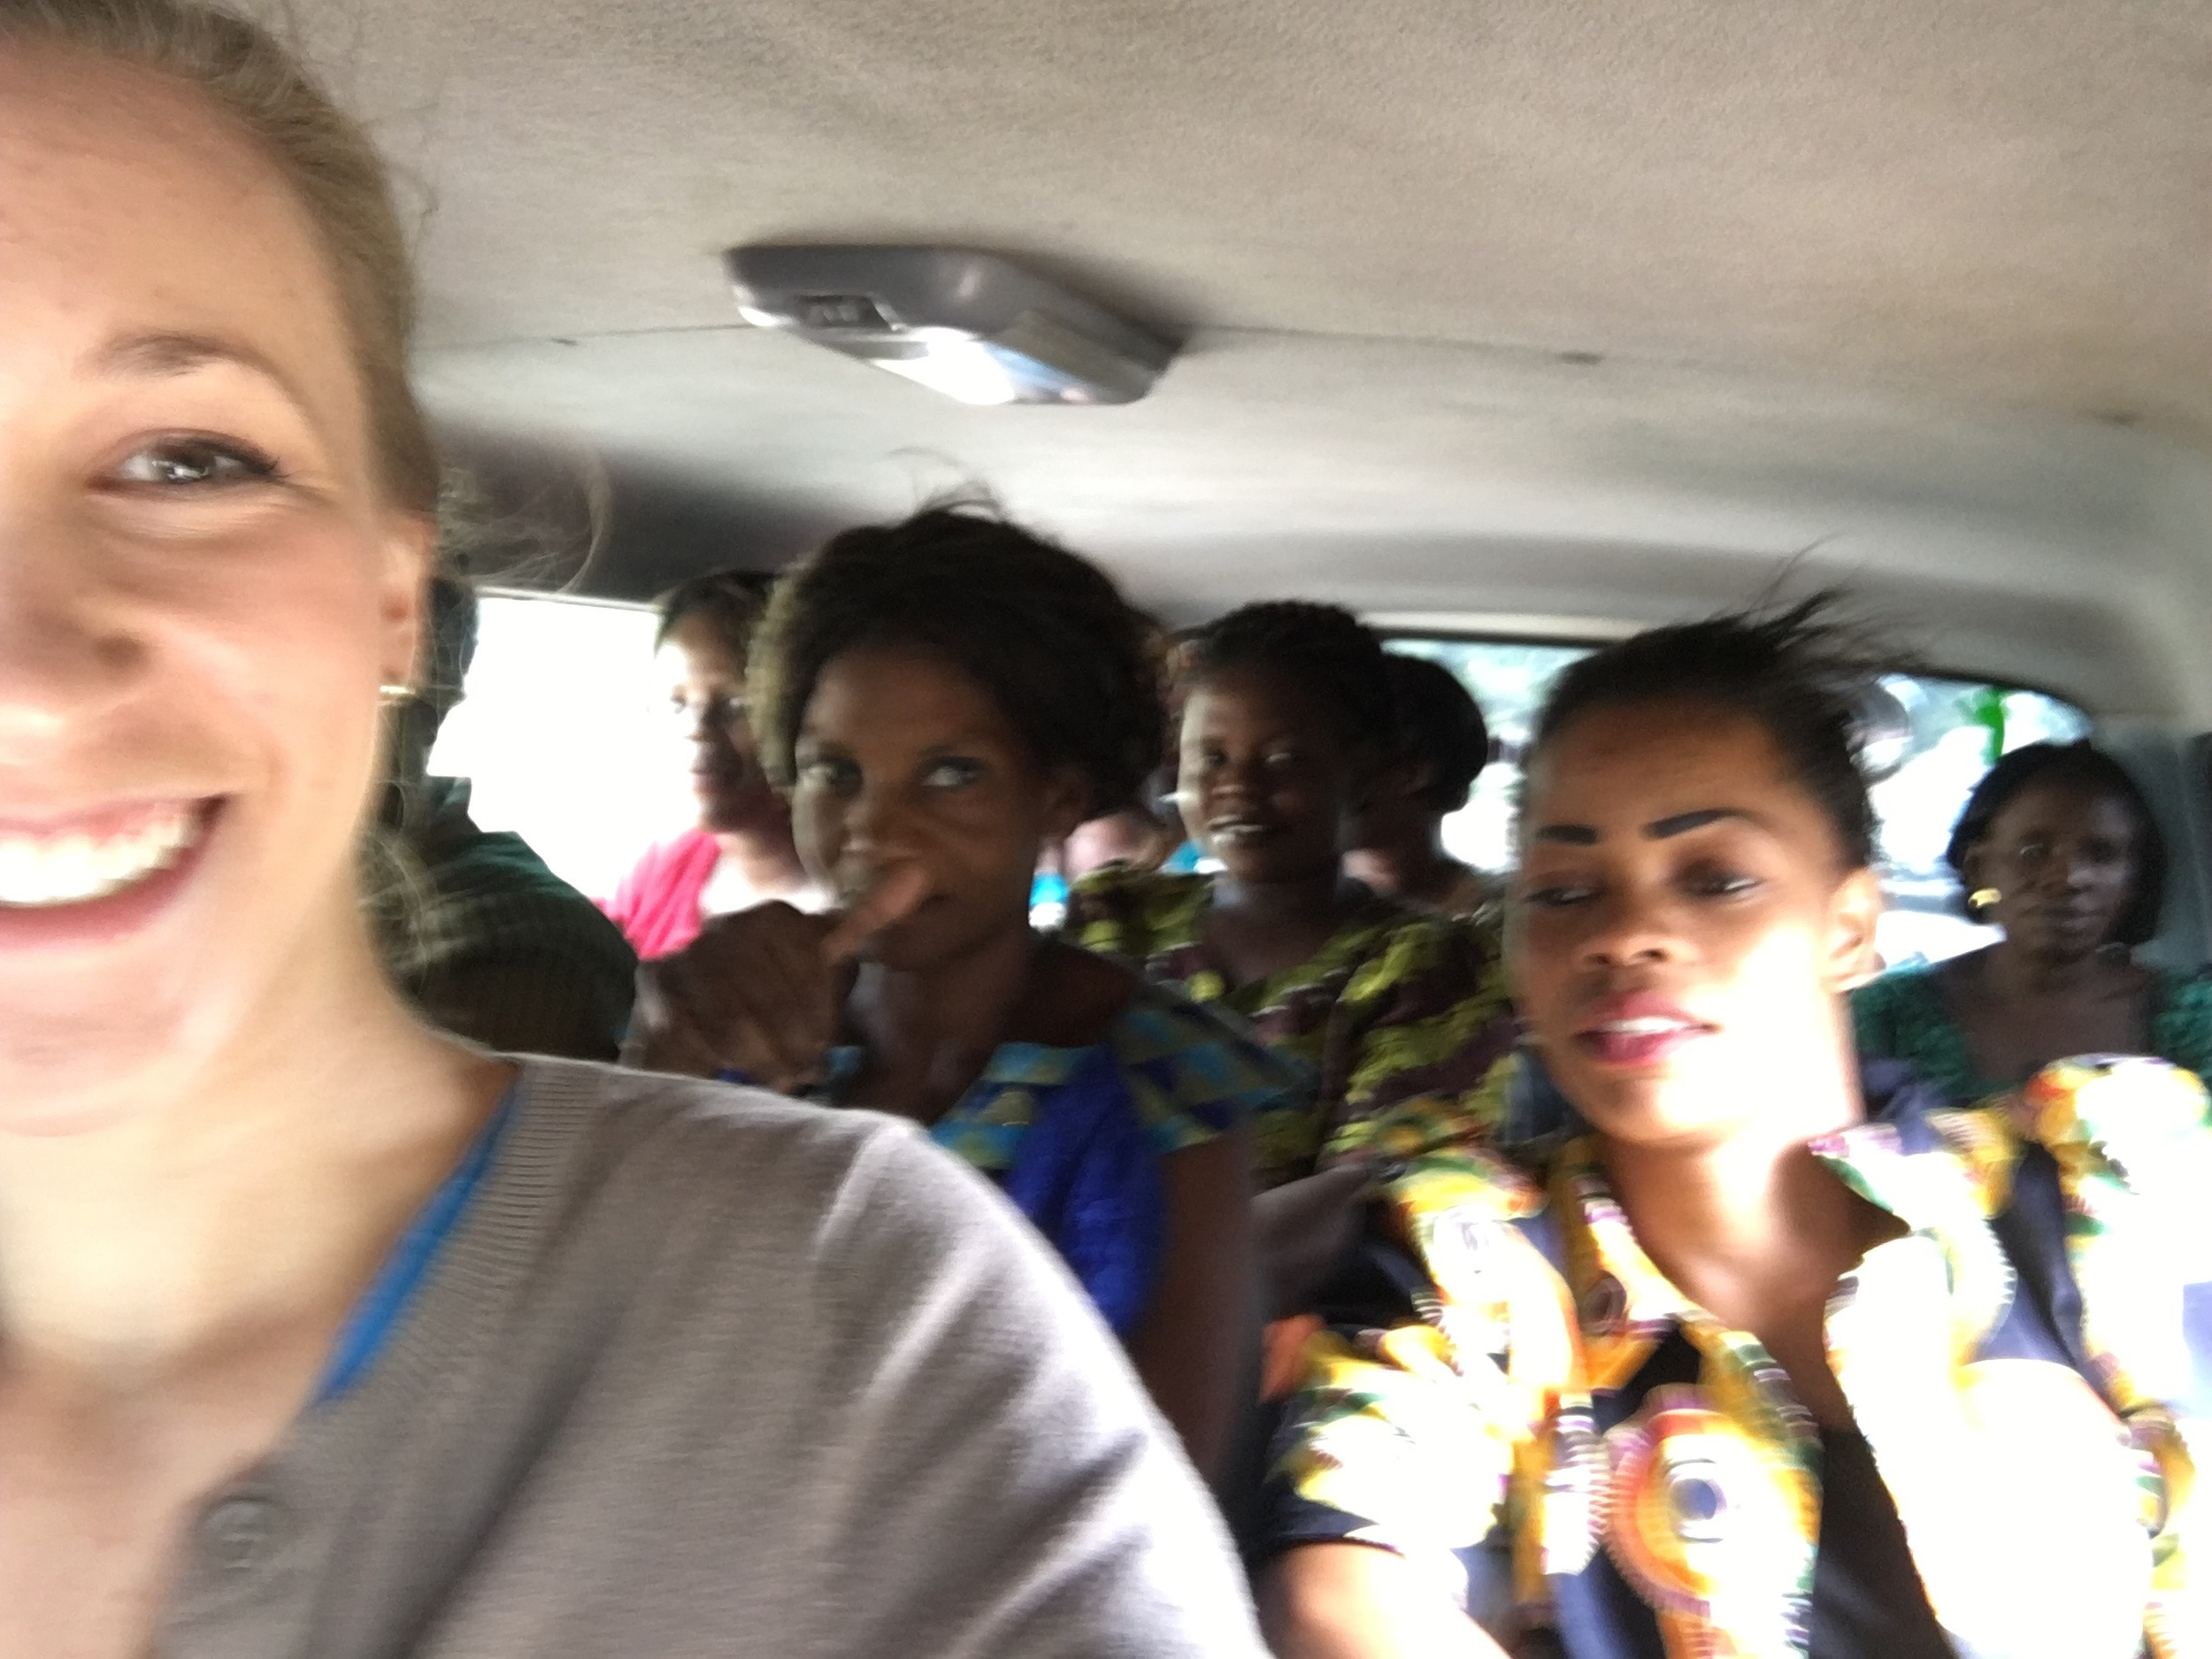 This blurry selfie doesn't even do this justice. Friends, we were packed to.the.gills in this Zambian minibus.